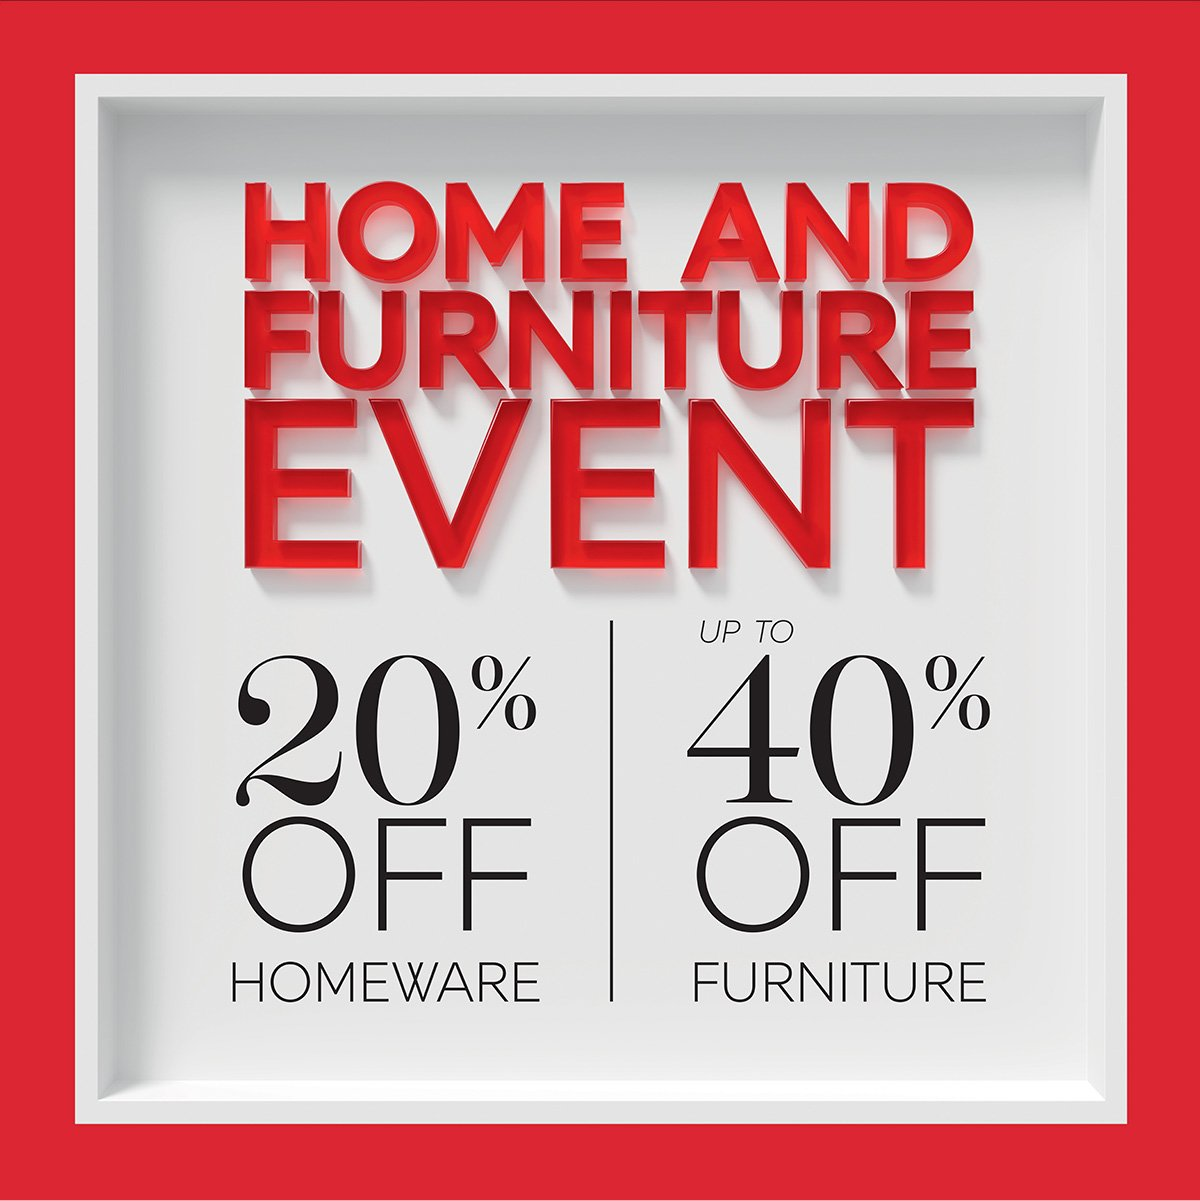 HOME AND FURNTITURE EVENT